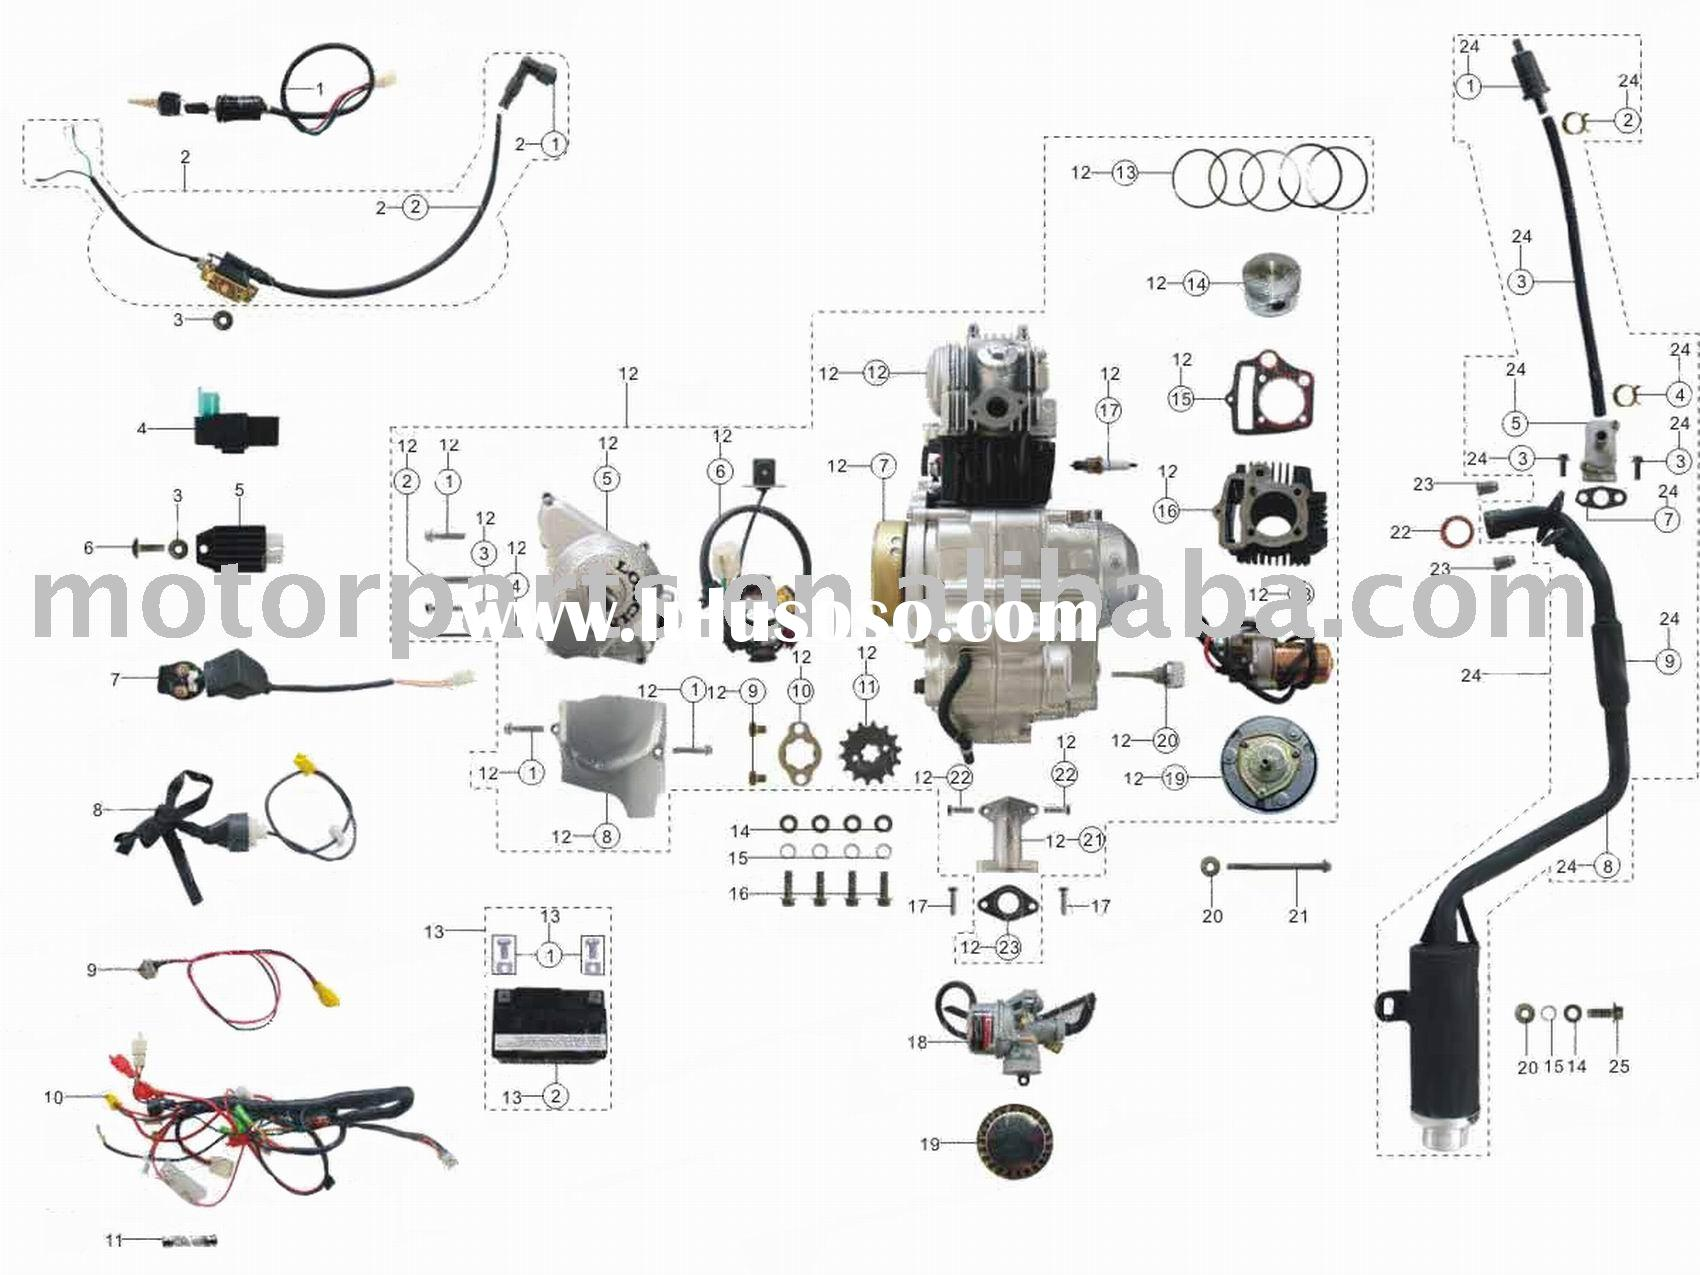 Sunl 250 Scooter Wiring Diagram | Wiring Liry Xingyue Cc Buggy Wiring Diagram on